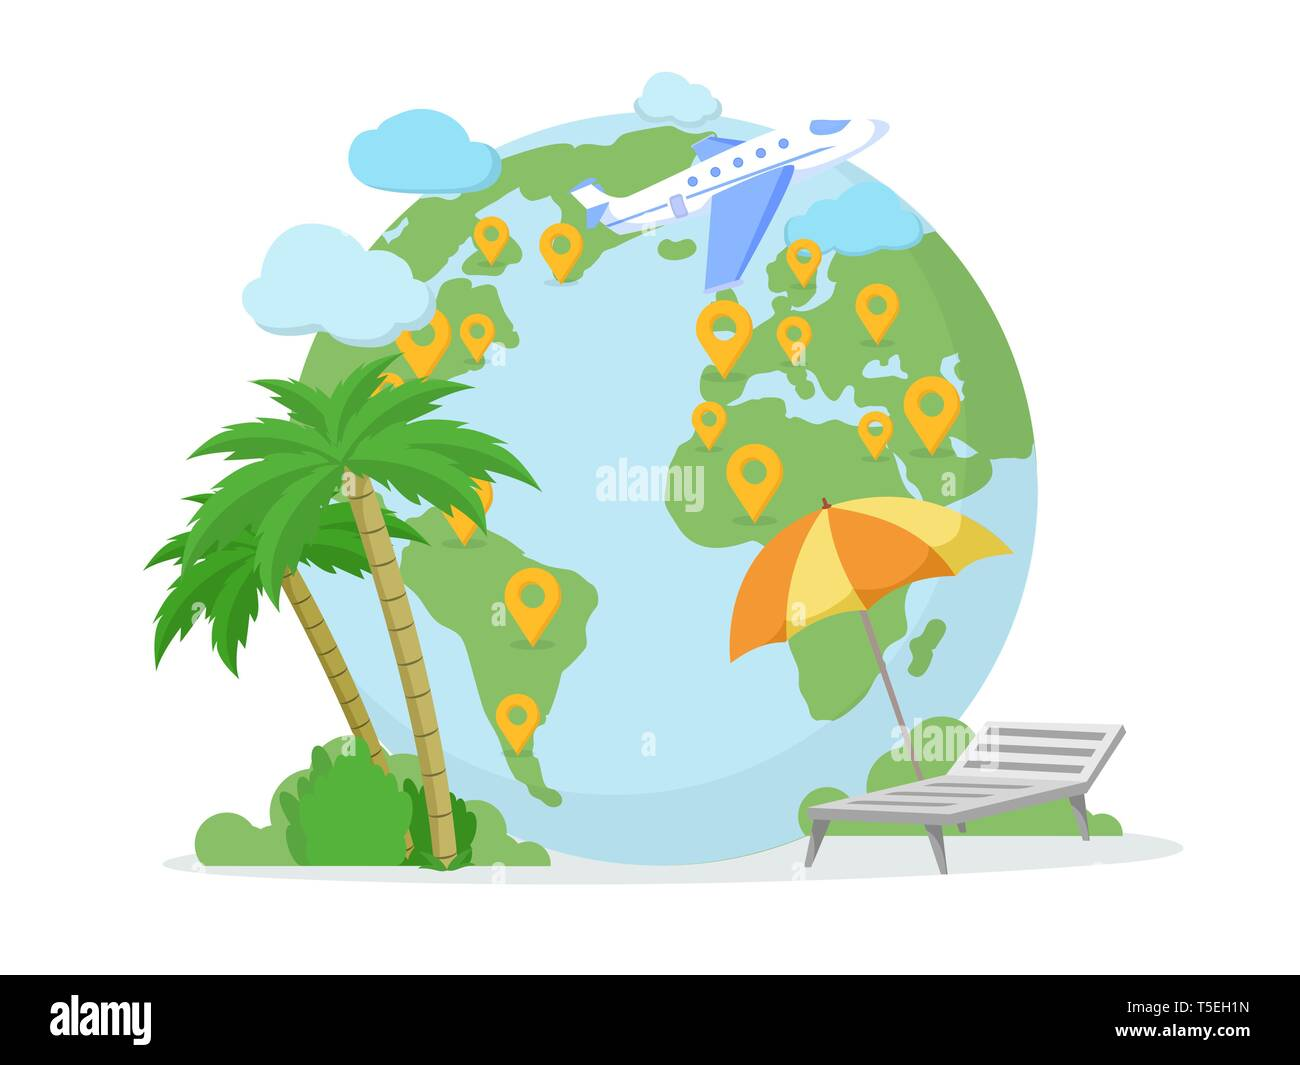 hight resolution of around world tour trip travel agency illustration pointer marks on planet earth globe exotic sea resort summer vacation isolated clipart